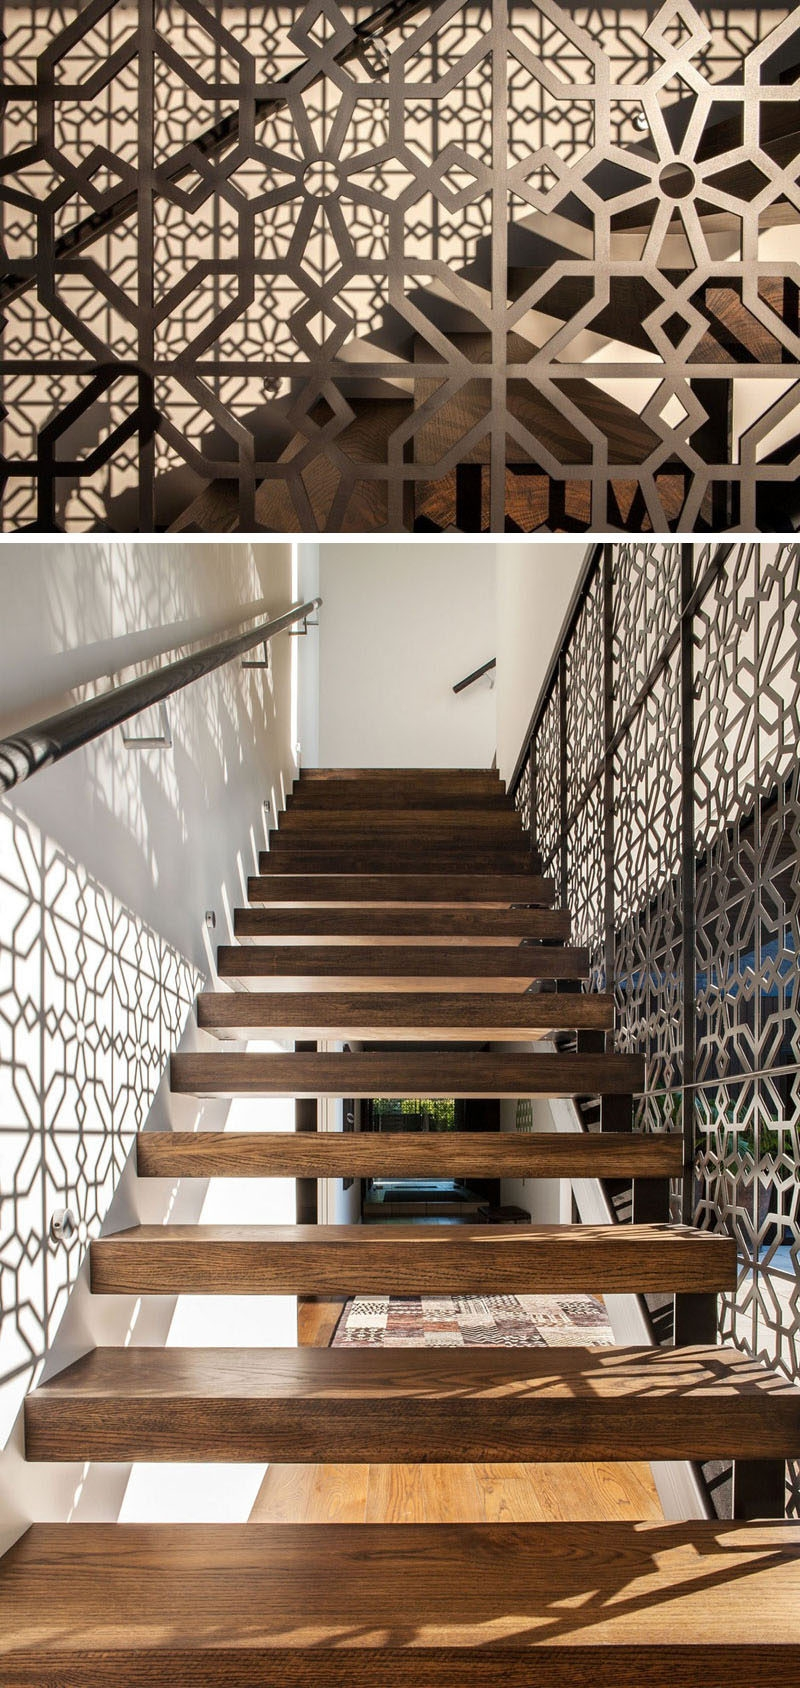 11 Creative Stair Railings That Are A Focal Point In These   Modern Banisters And Railings